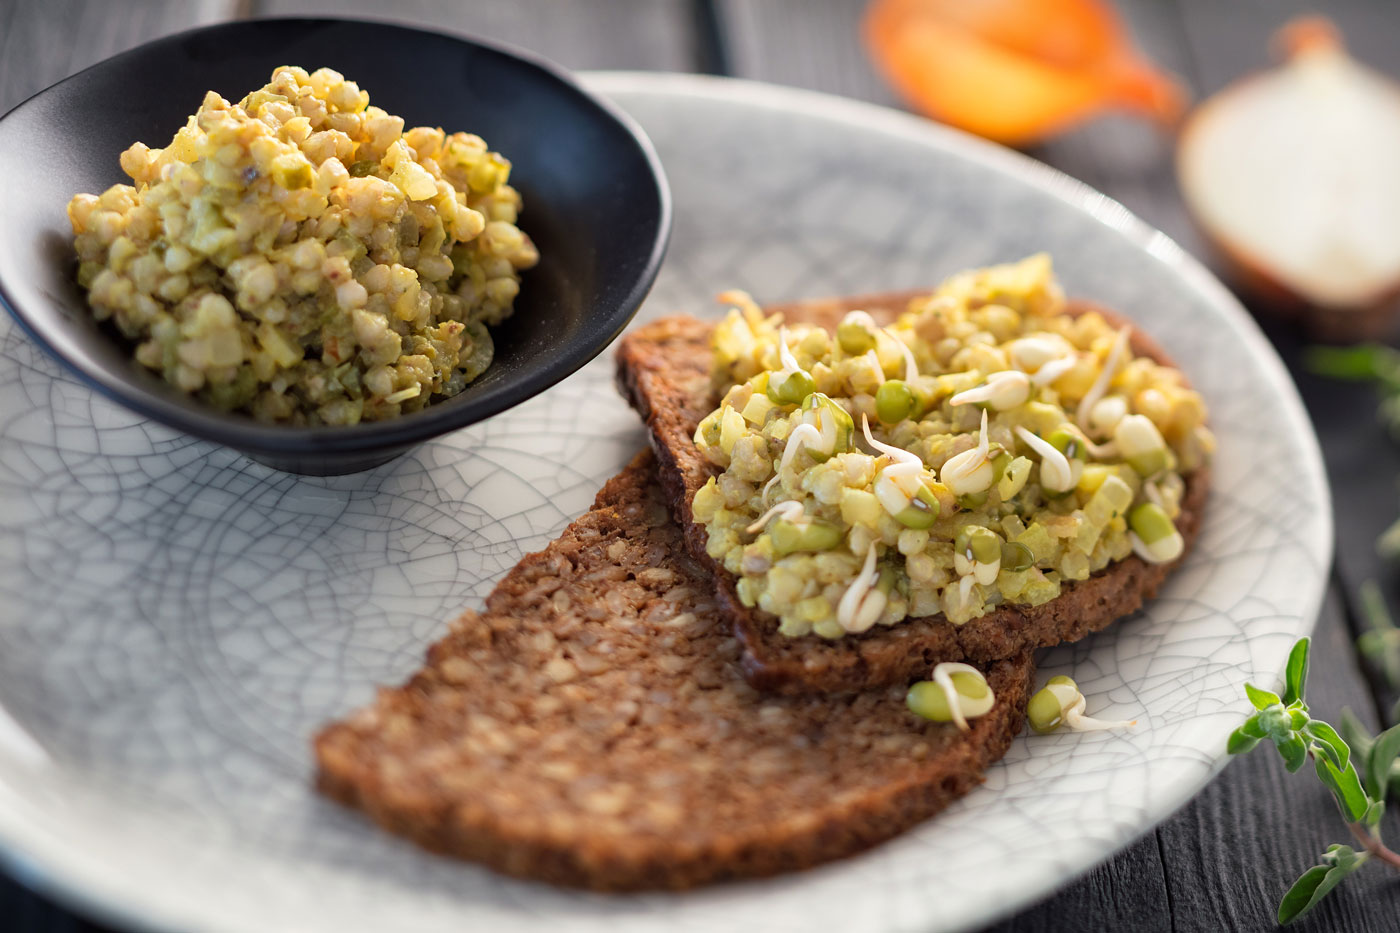 Recipe image of bread with vegetable spread